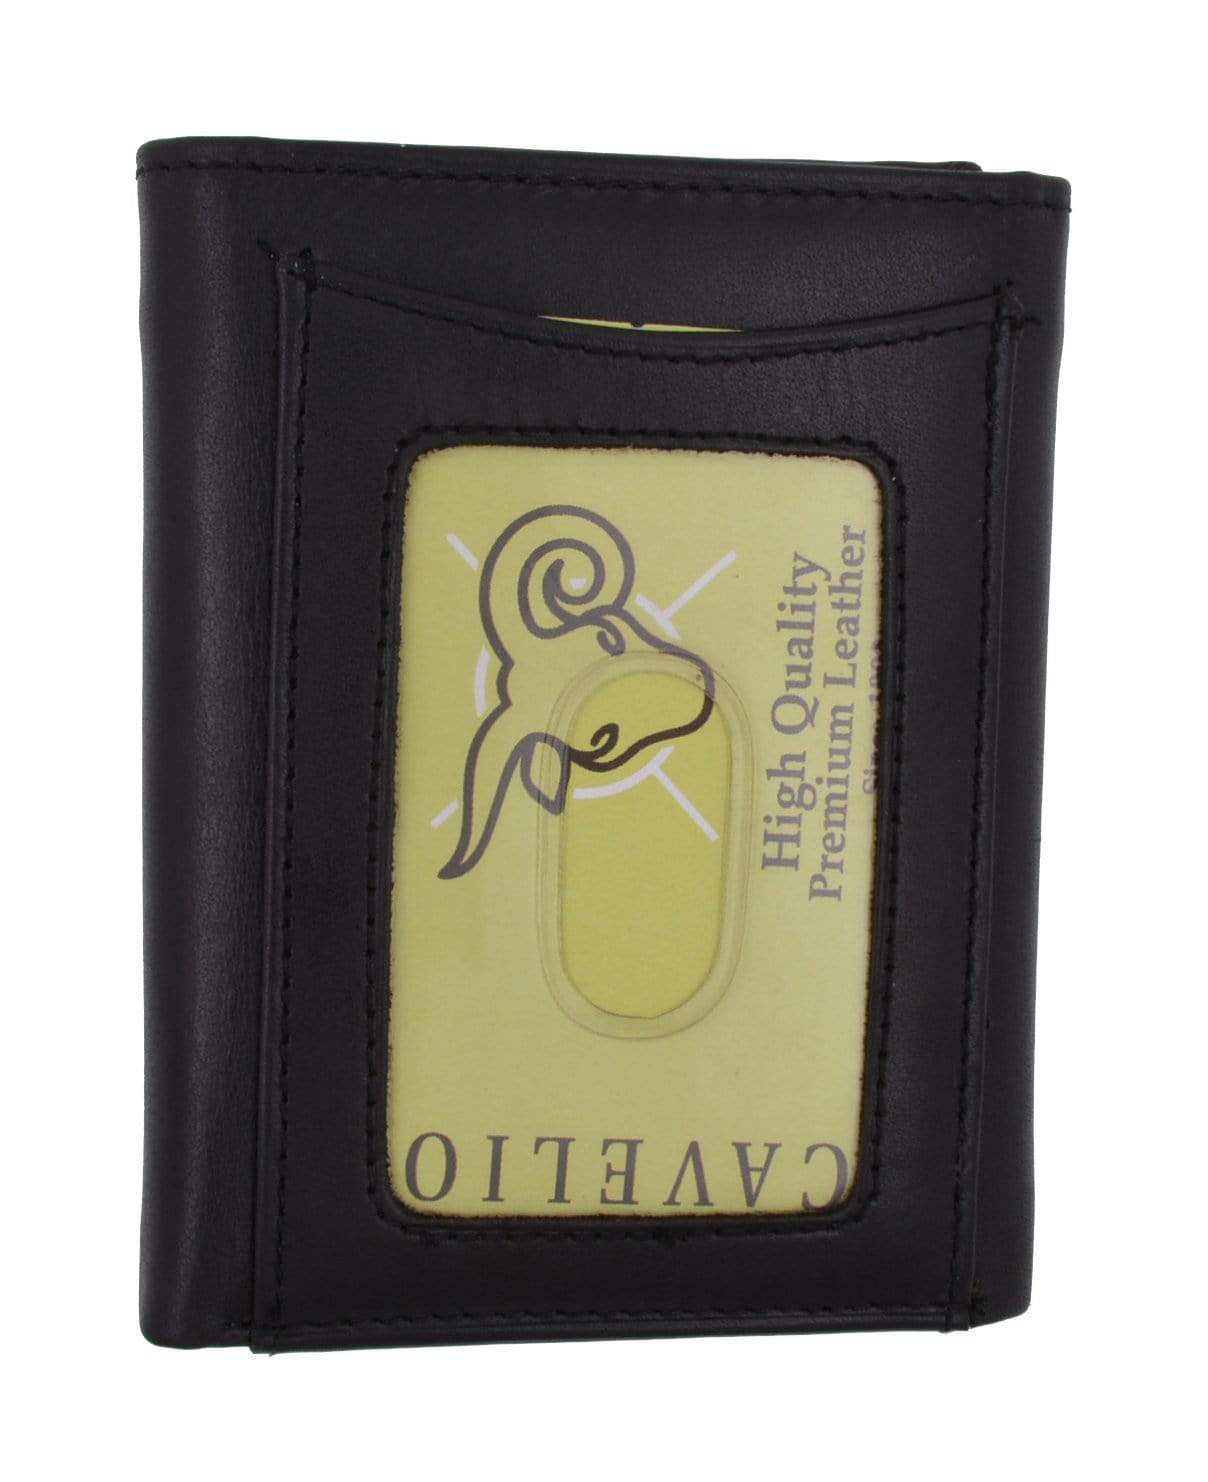 mens high quality genuine leather card holder trifold wallet with outside id window by cavelio c